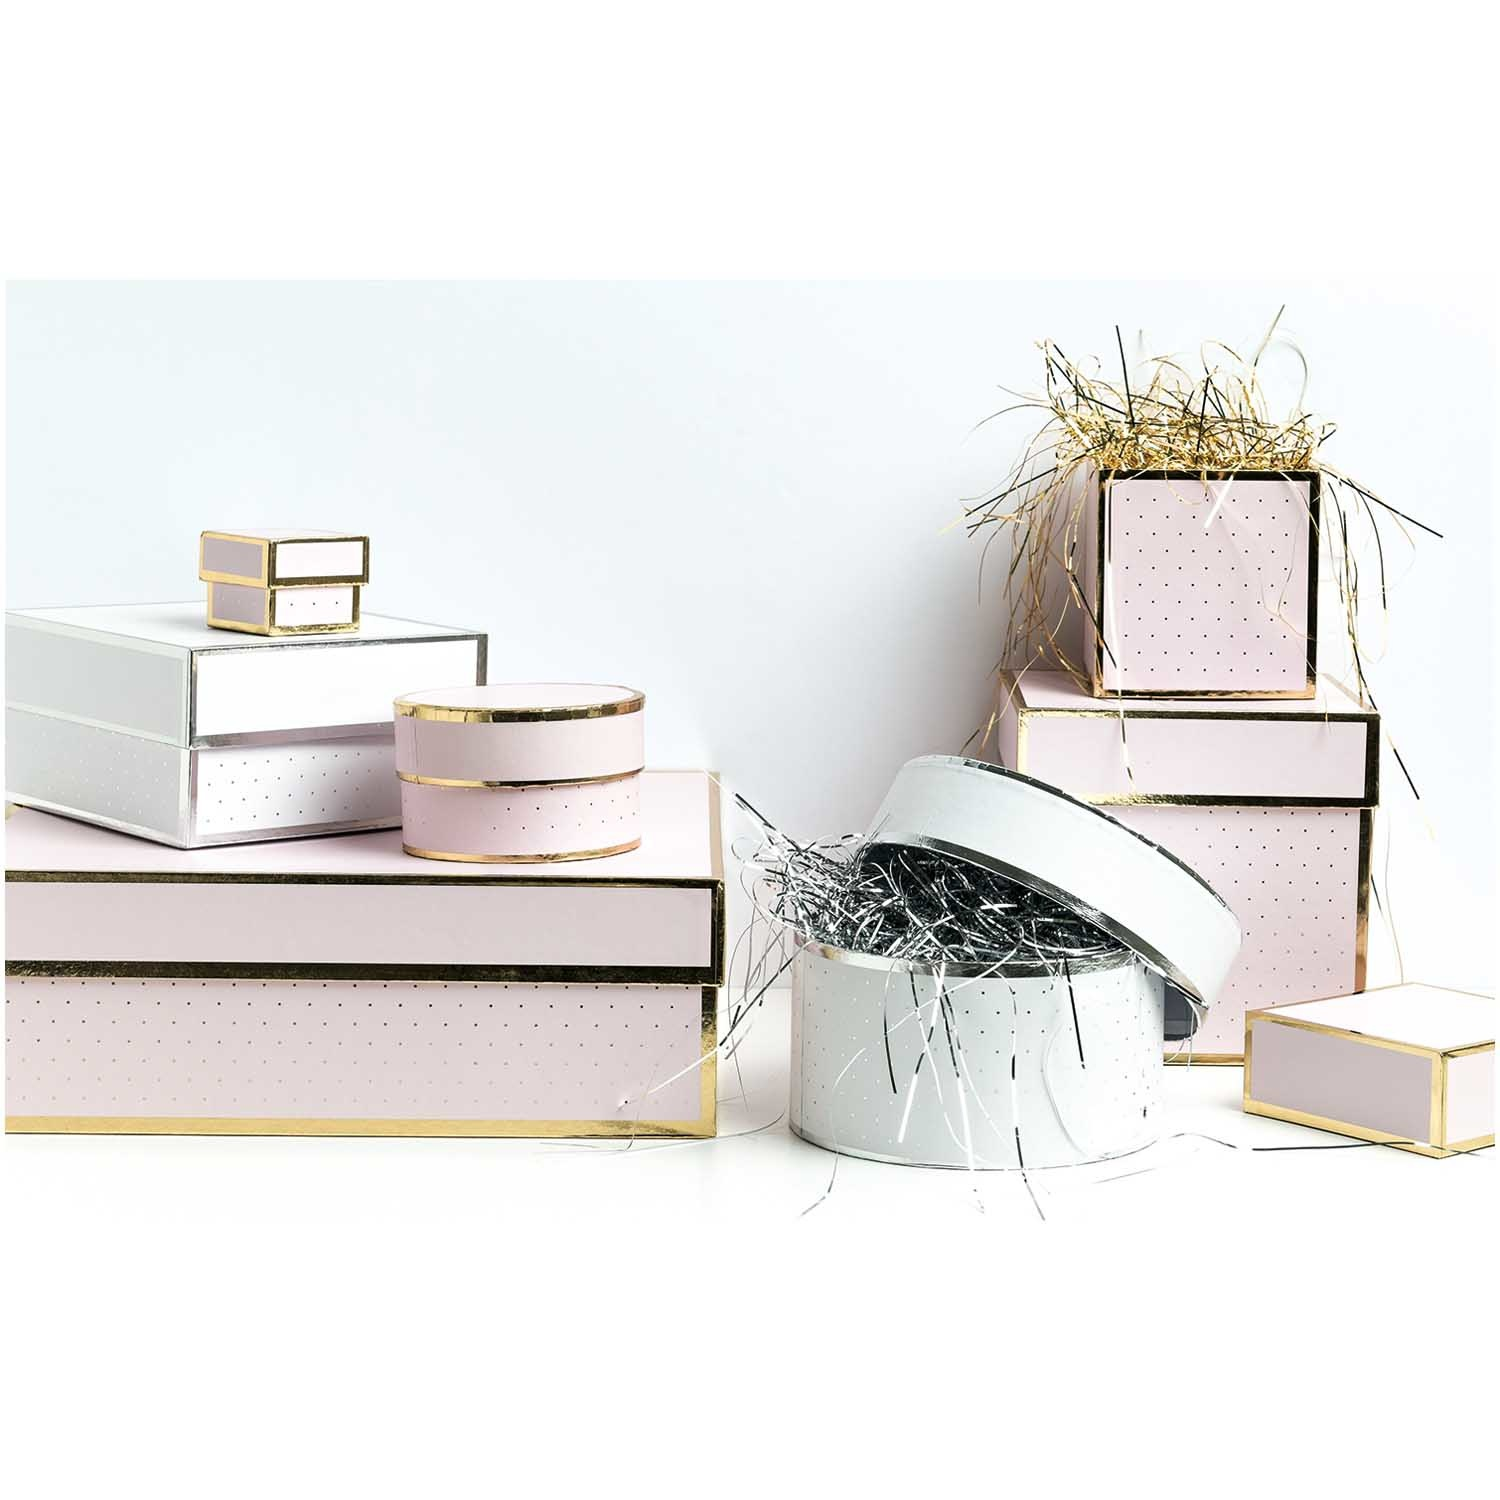 Rico NAY GIFT BOX, PINK, SQUARE, FSC RECYCLED 15X15X15 CM